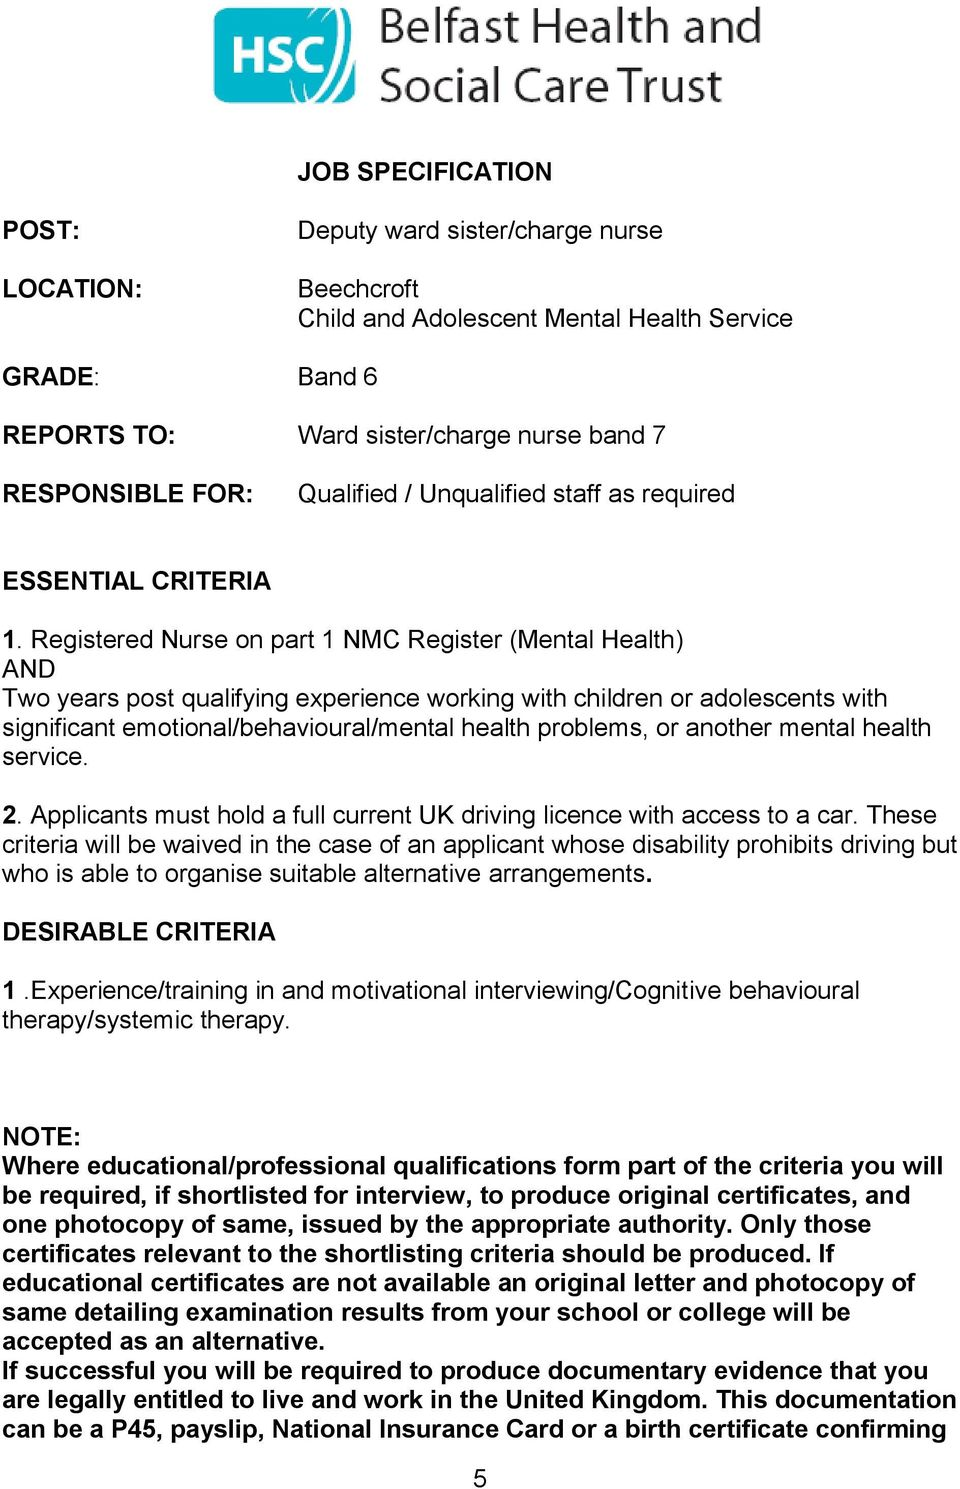 Registered Nurse on part 1 NMC Register (Mental Health) AND Two years post qualifying experience working with children or adolescents with significant emotional/behavioural/mental health problems, or